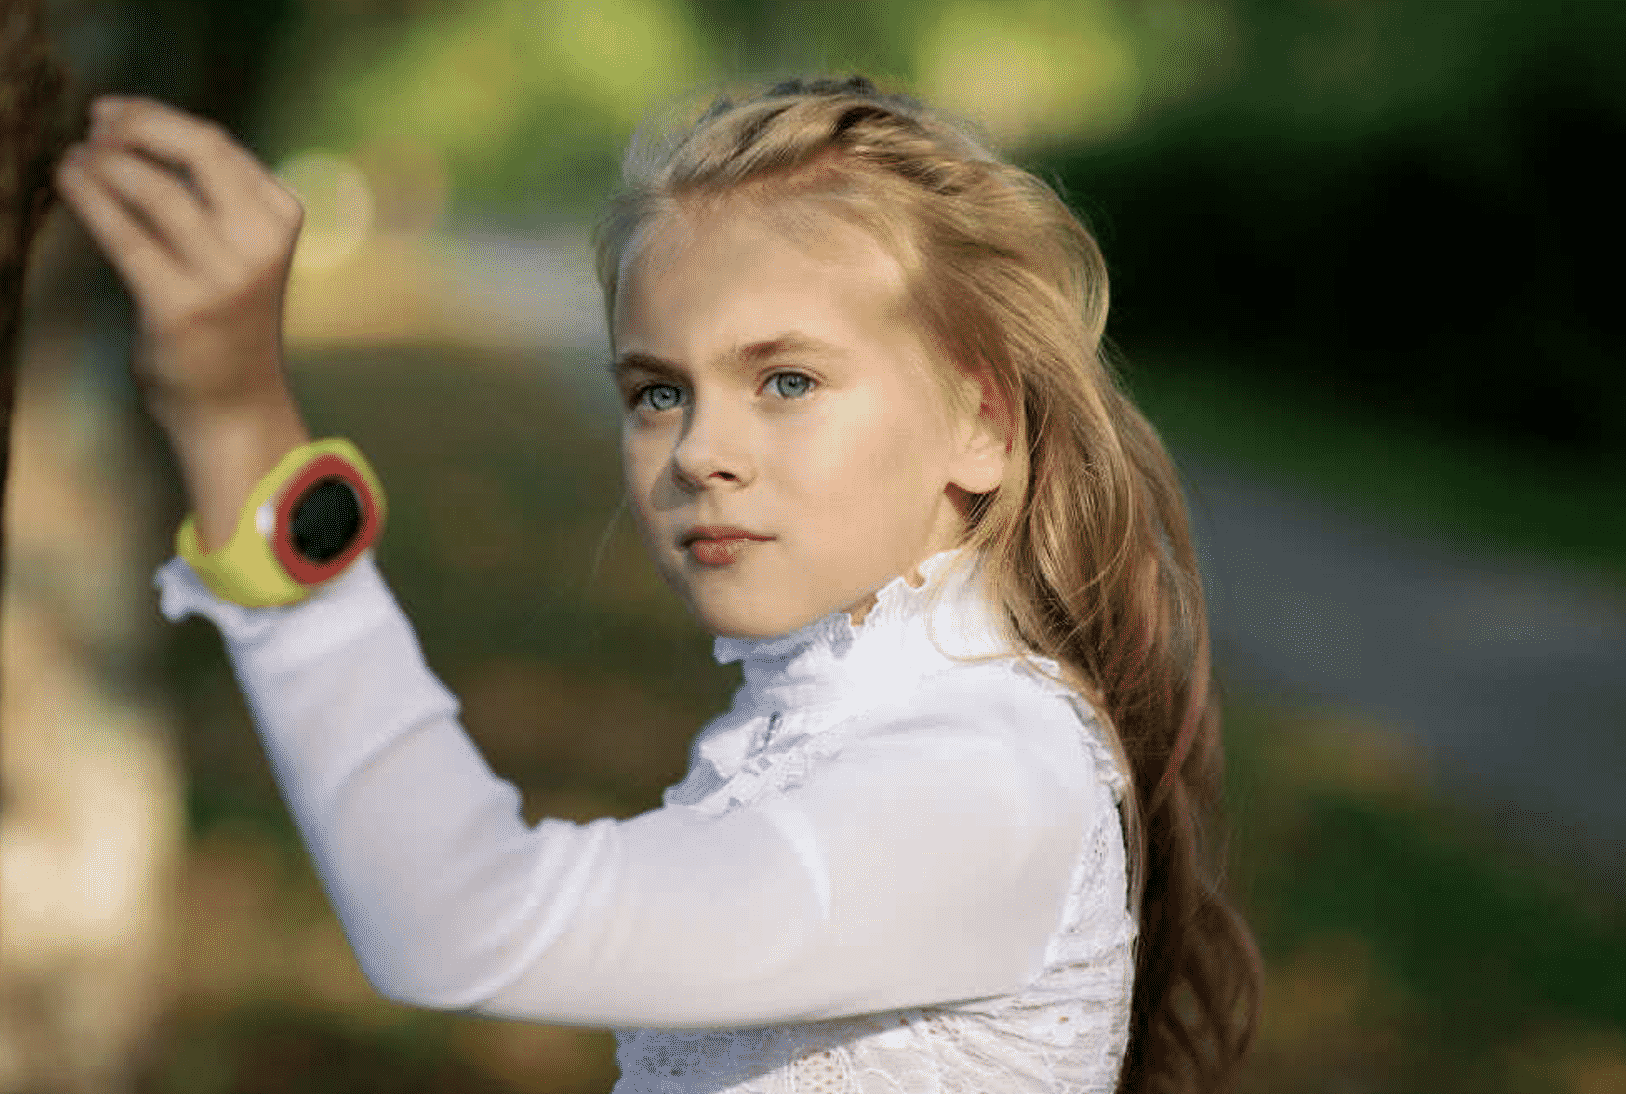 What are the Best Fitbits for Children?